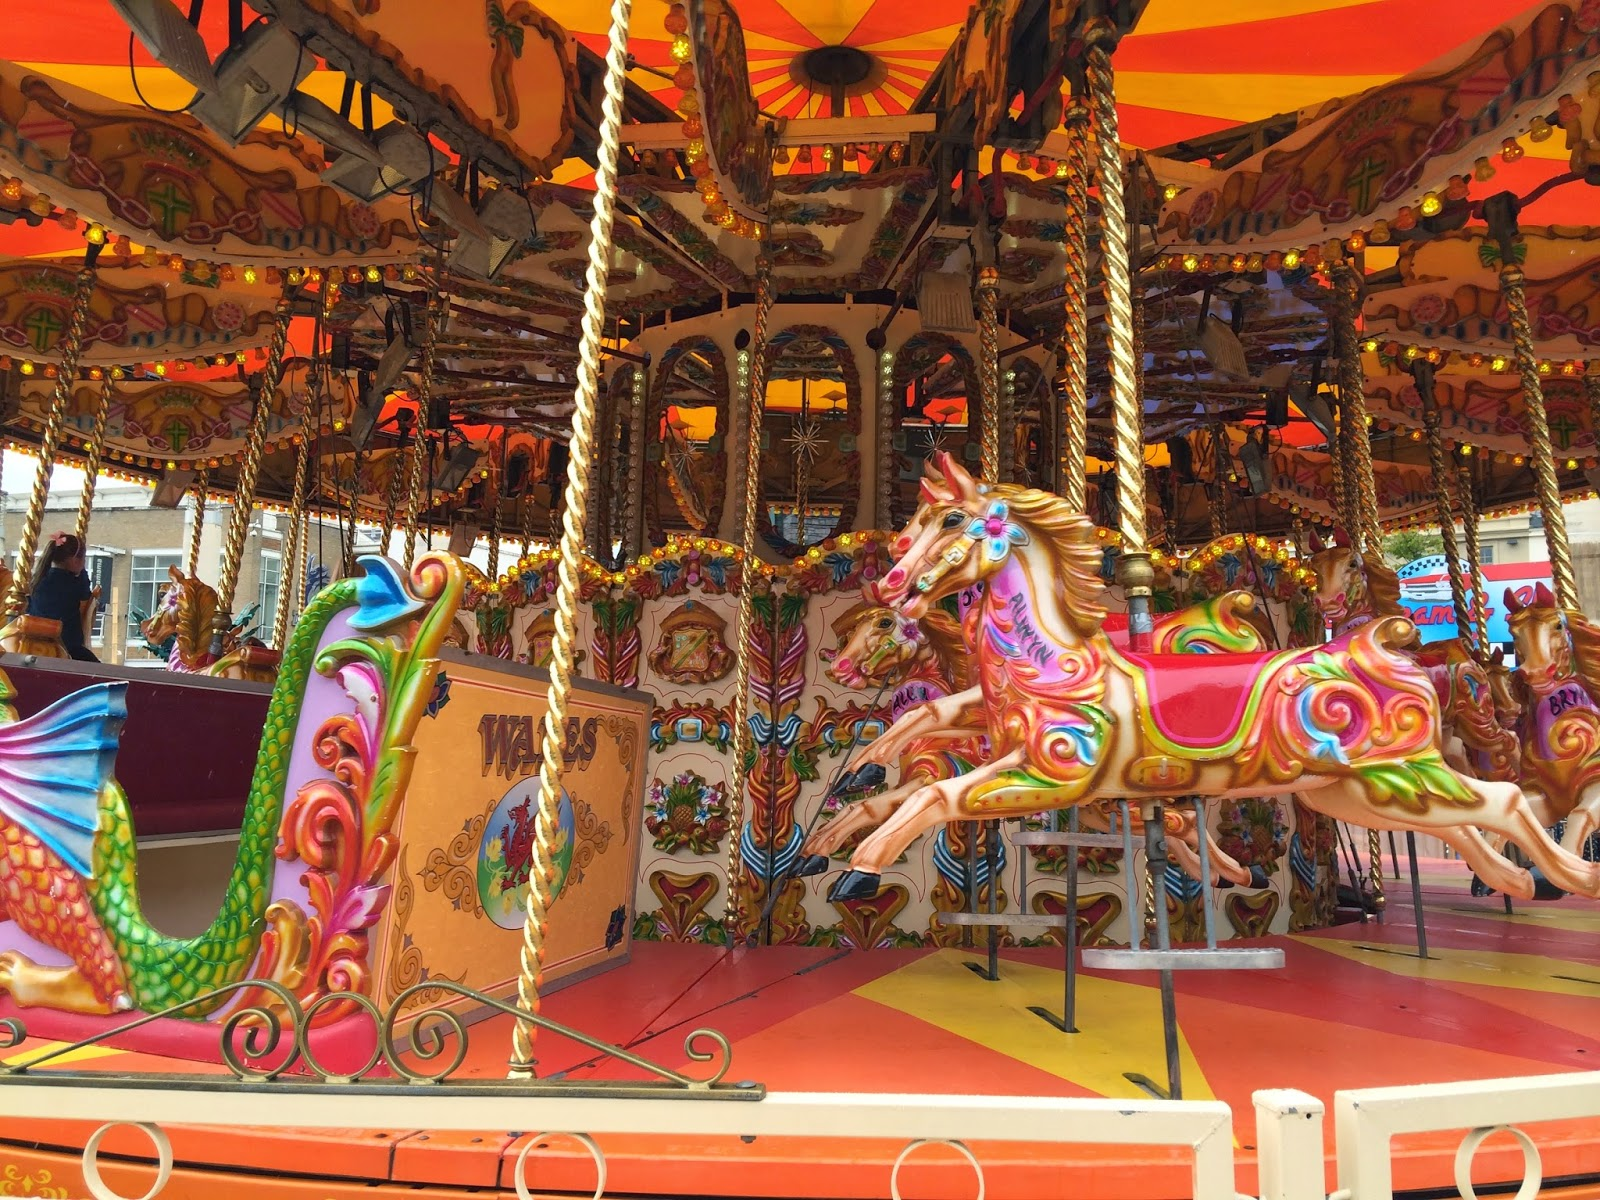 Carousel, Cardiff Bay Beach, Cardiff Bay, Things to do in Summer in Cardiff, Cardiff, Tiger Bay